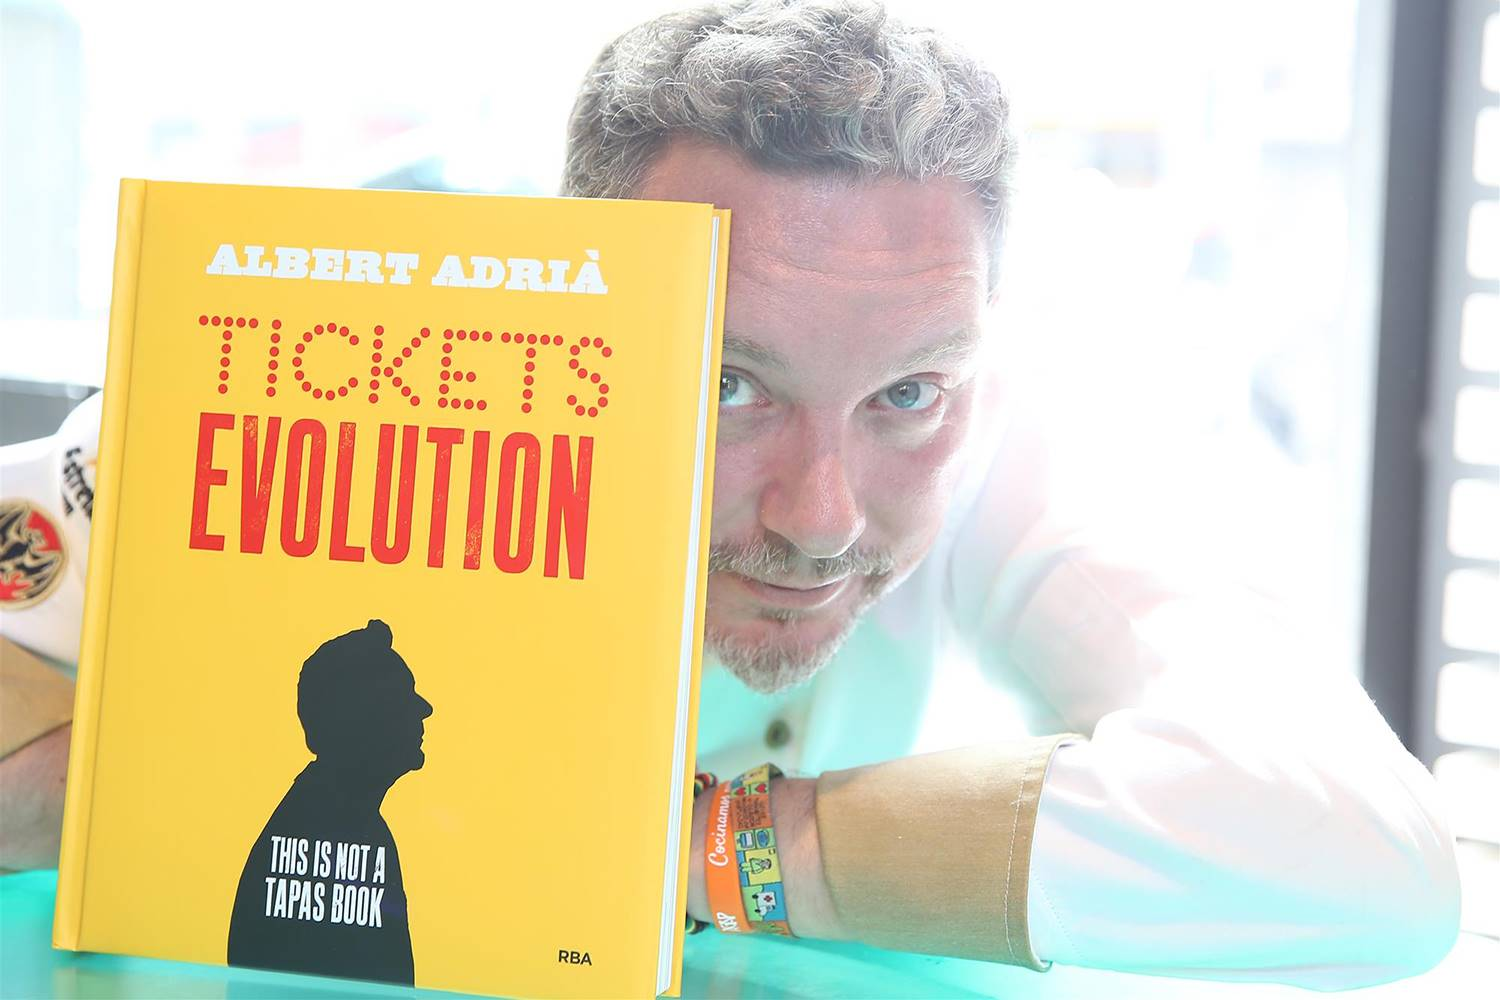 tickets evolution alfredo-garofano. [10] Tickets evolution, Albert Adrià, RBA